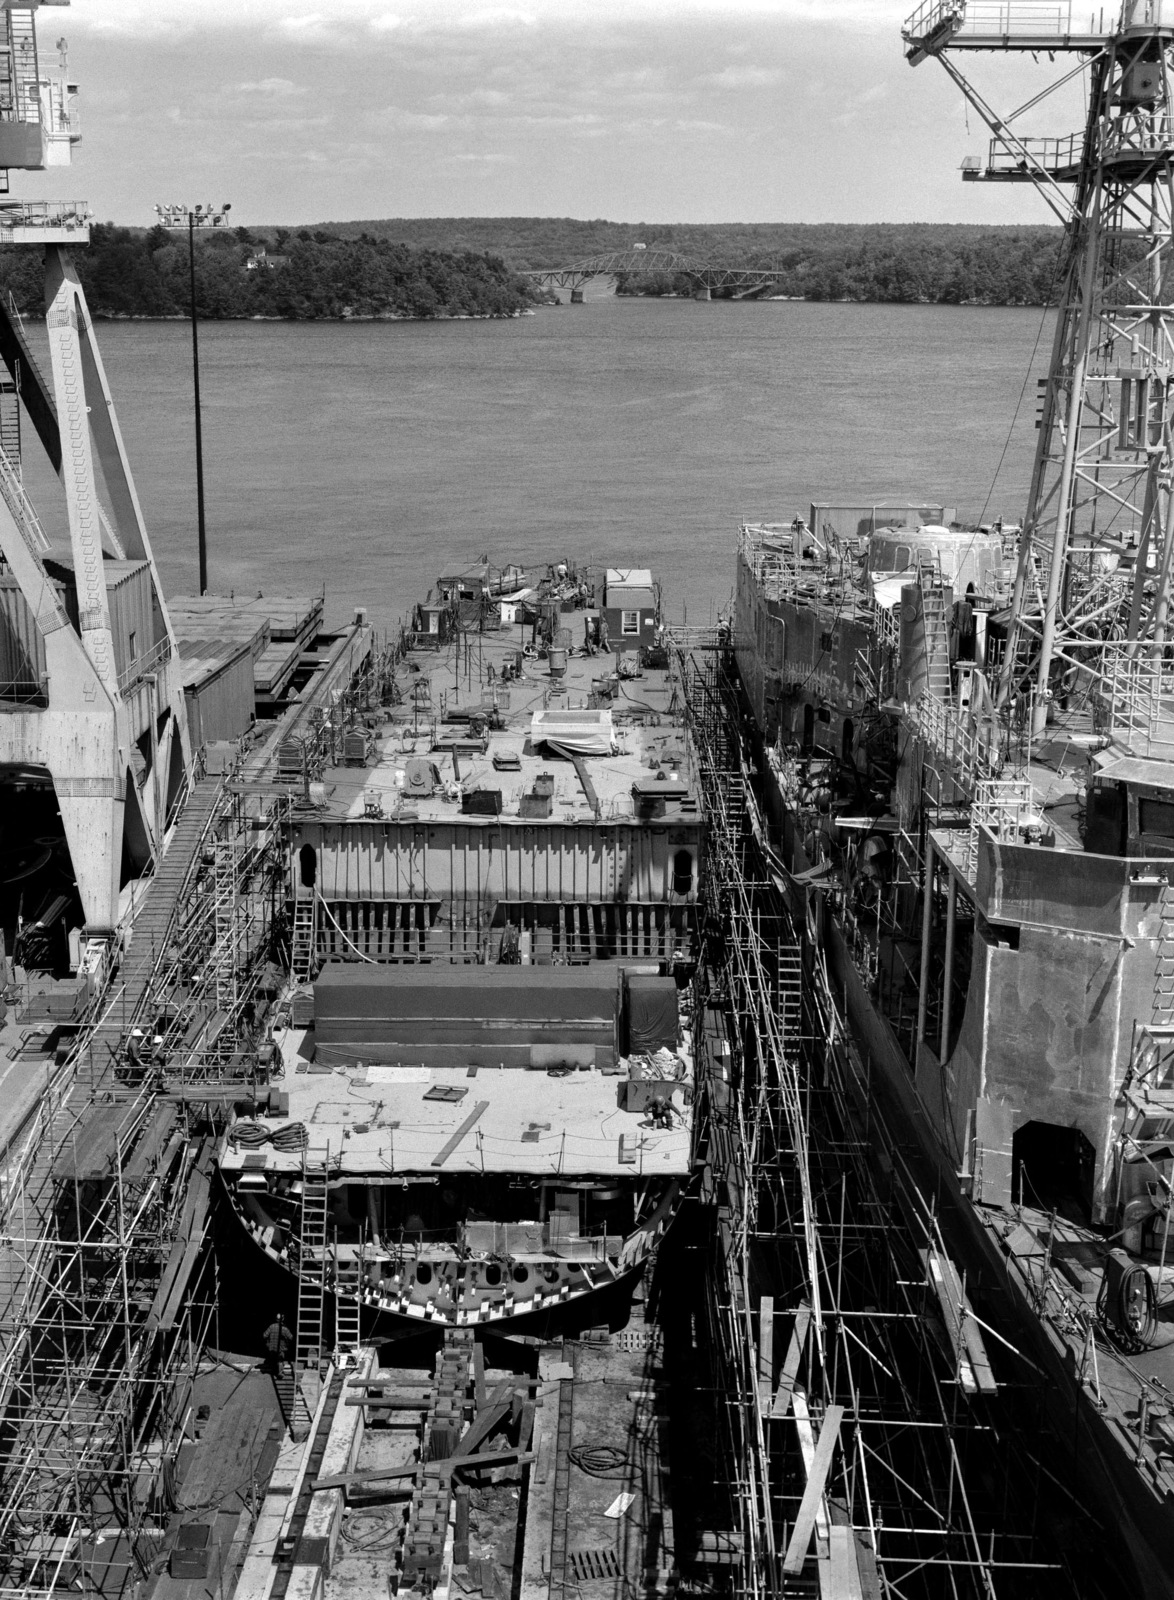 A bow view of the guided missile frigate USS ESTOCIN (FFG 15) under construction